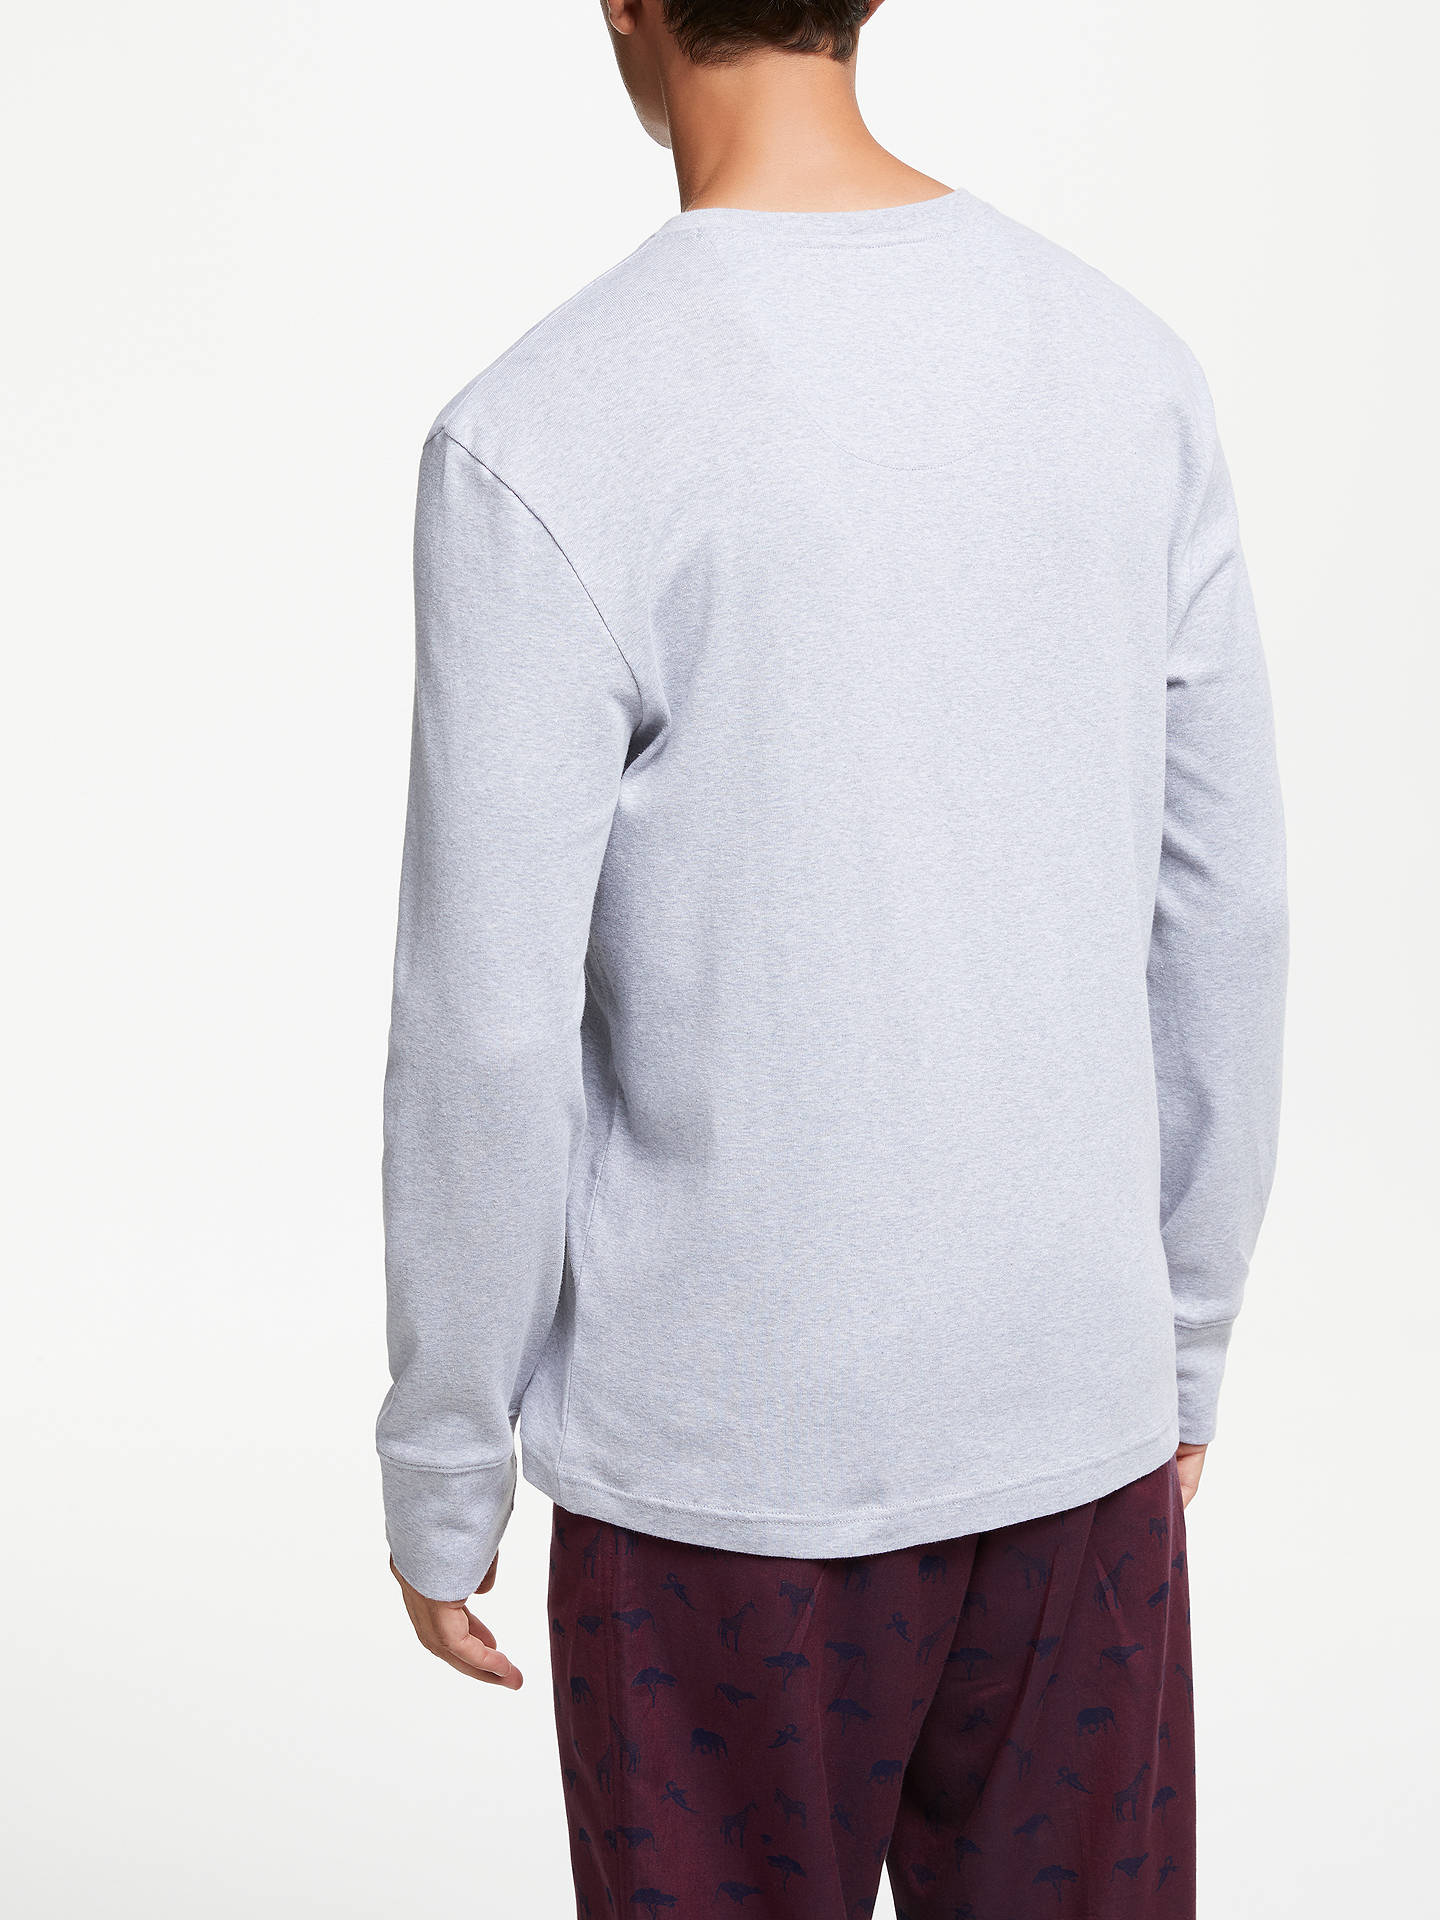 f0ad9540a2f3 ... Buy John Lewis & Partners Waffle Cotton Henley Shirt, Grey, S Online at  johnlewis ...